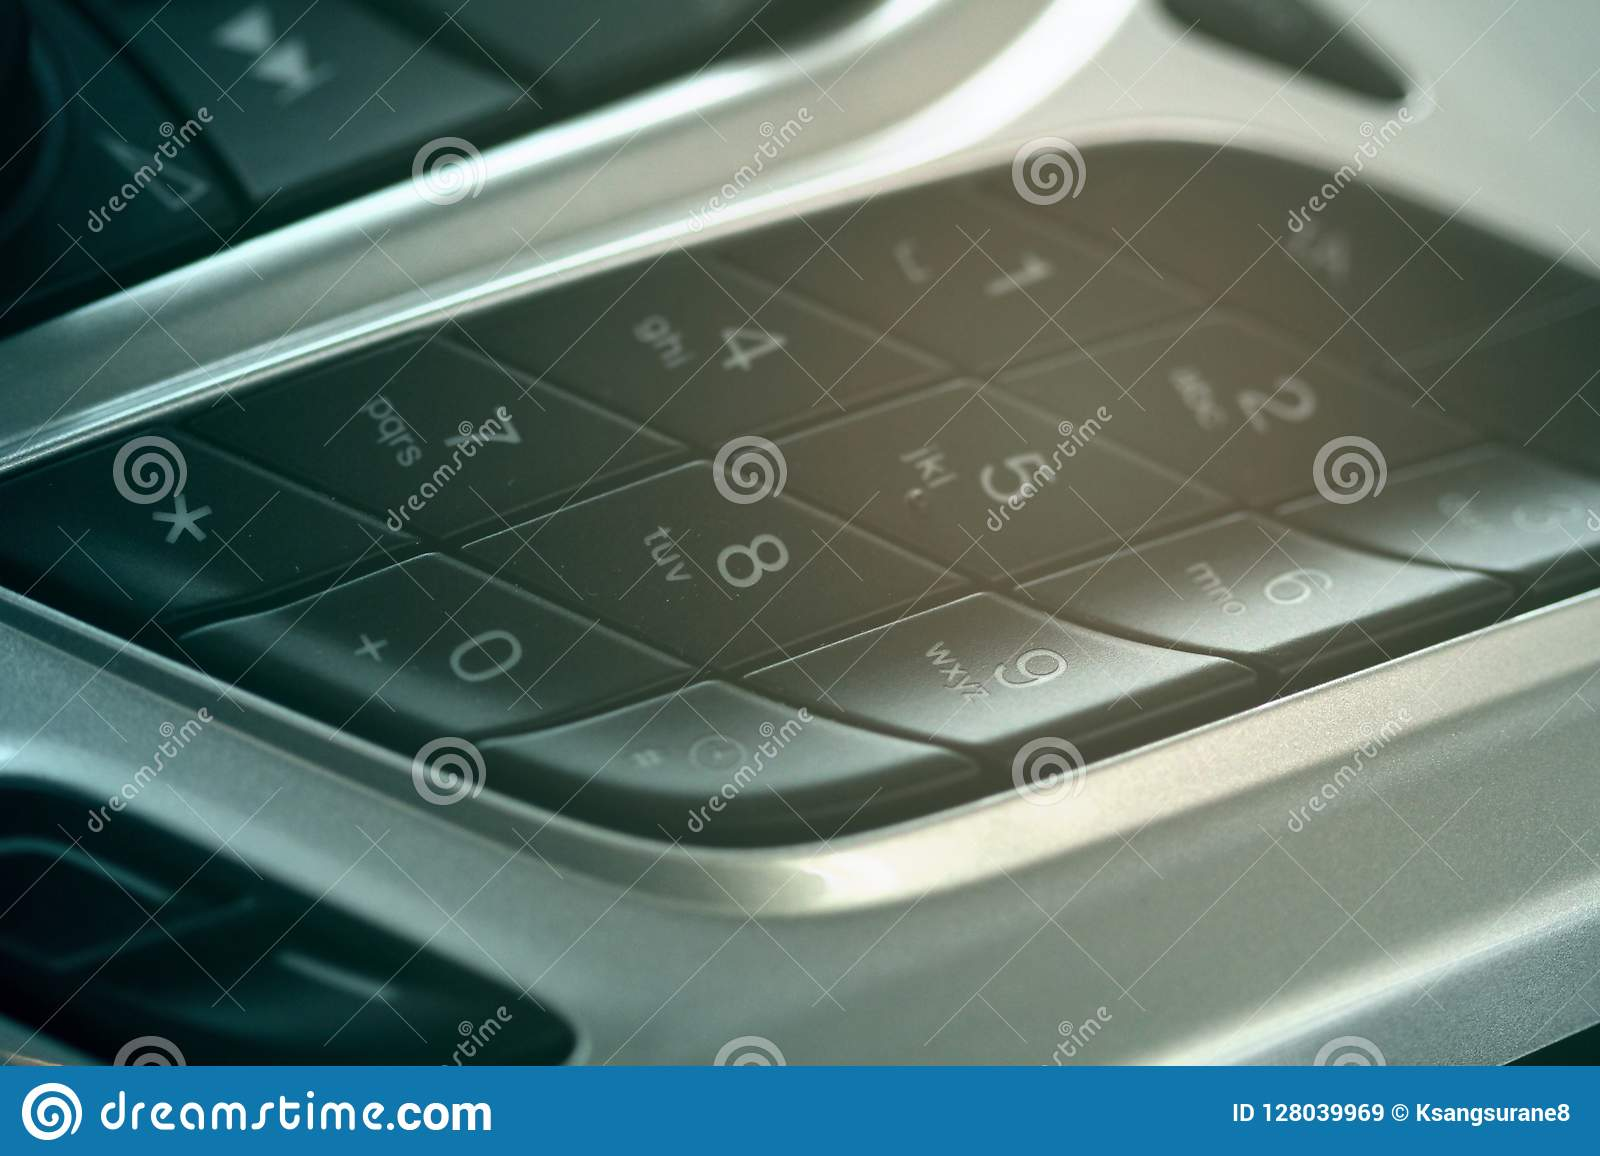 Car dashboard dial pad beside audio control buttons